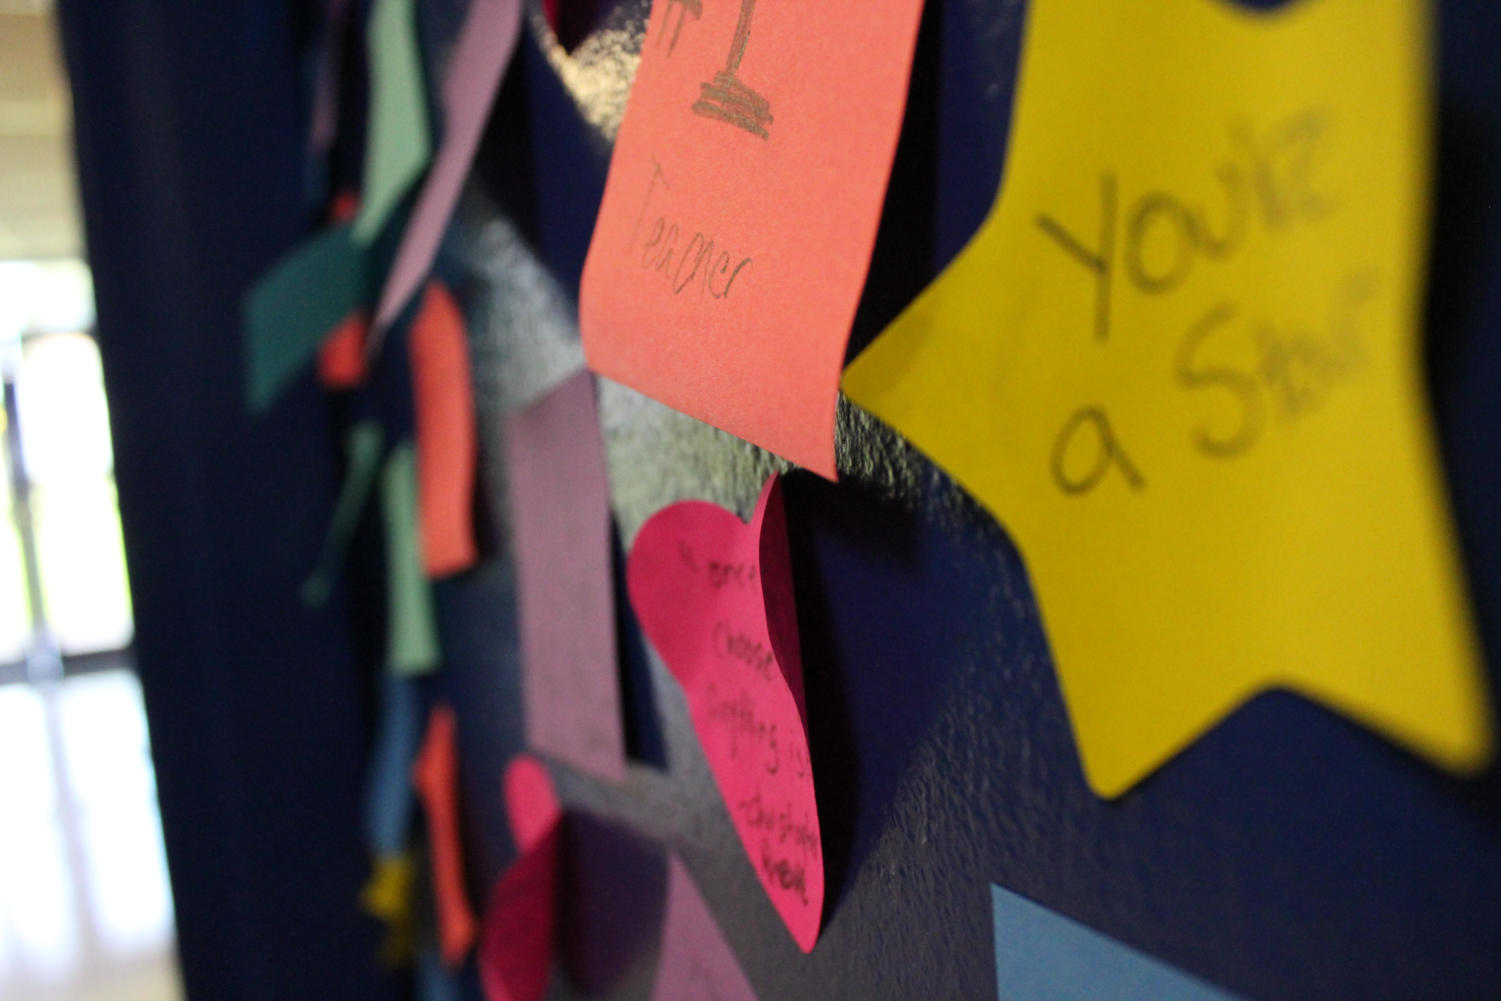 Positive notes made by students adorn Mr. Crisafi's classroom door after his brother-in-law passed away earlier this year.